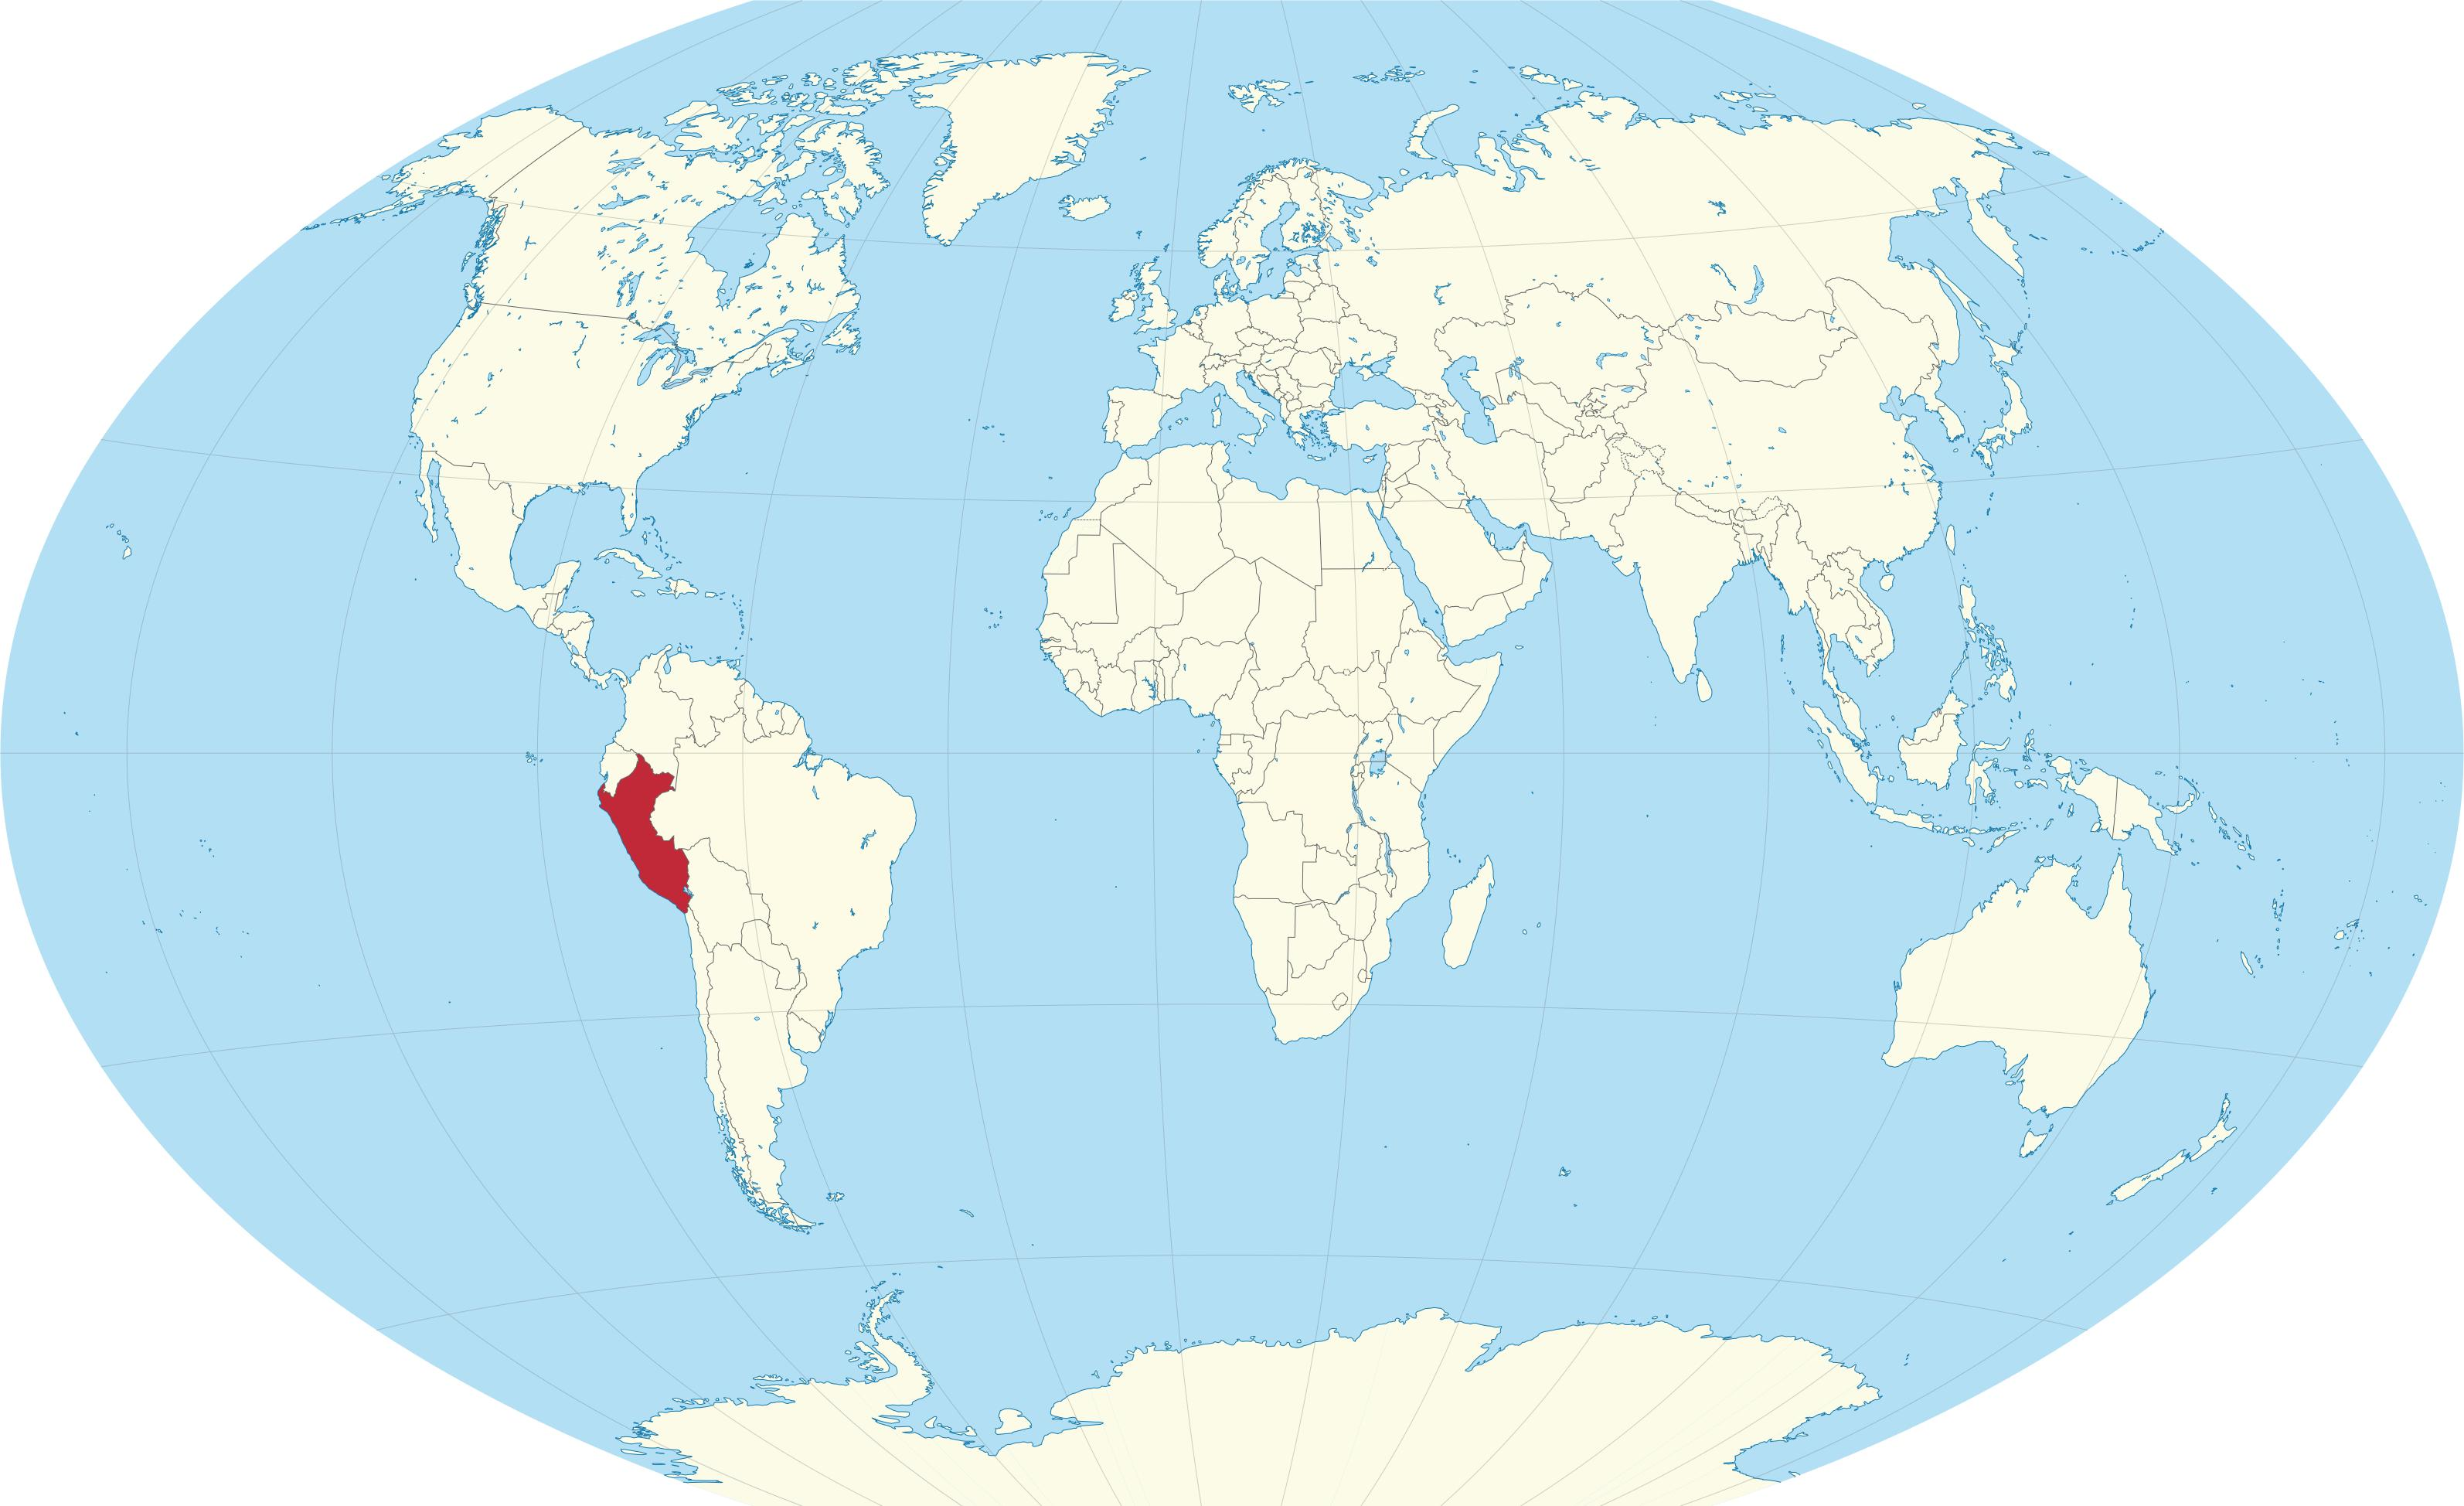 Peru on world map - World map showing Peru (South America ...